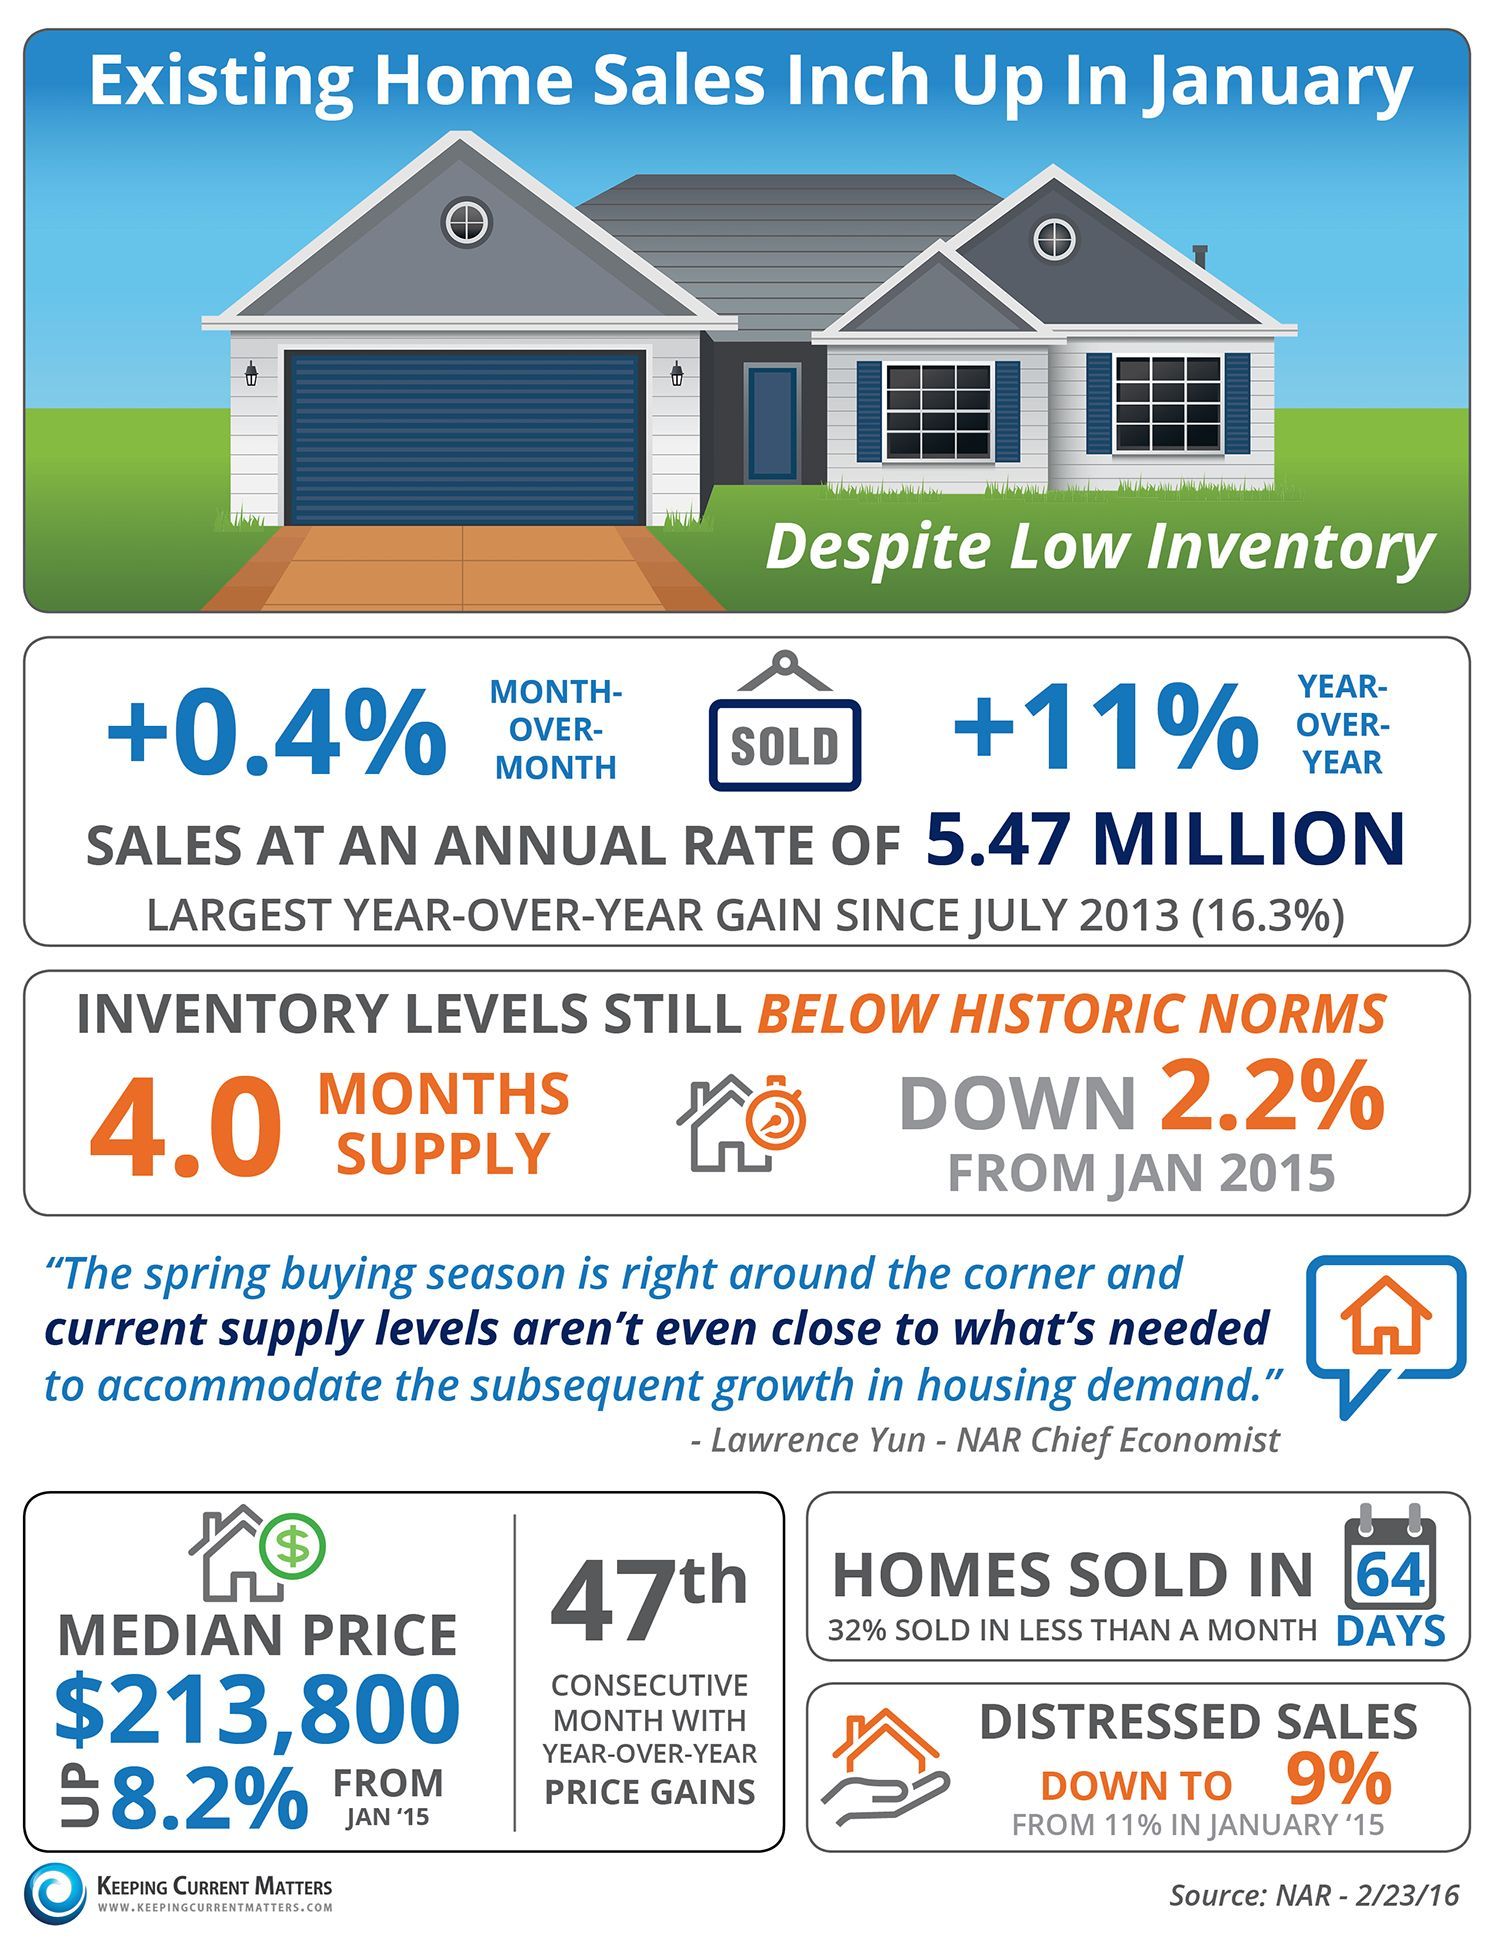 Exising Home Sales Inch Up In January Infographic Keeping Current Matters Maine Real Estate Real Estate Real Estate Infographic